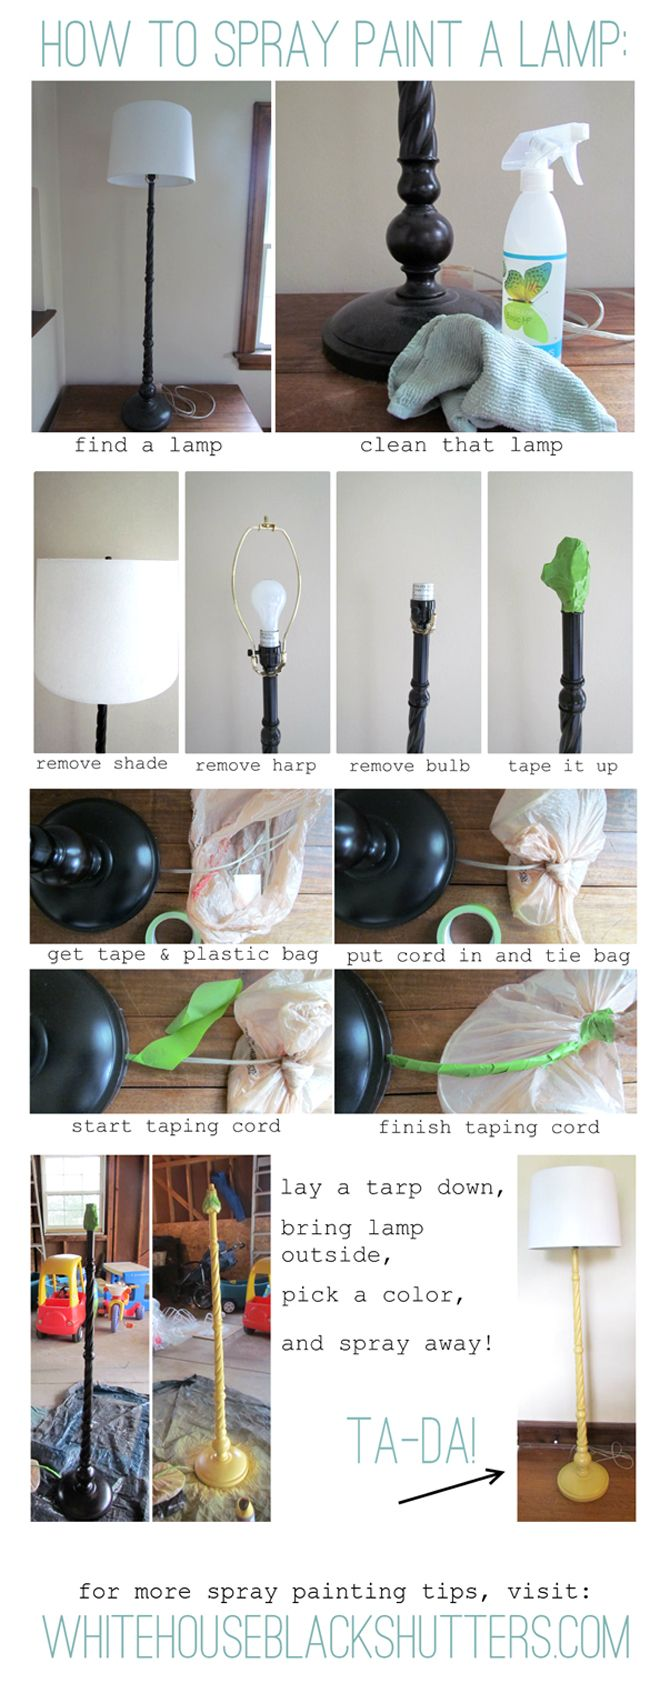 SPRAY PAINT | TECHNIQUE :: How to spray paint a LAMP BASE :: She also has recommended cleaner to use before you repaint anything. | #lamps